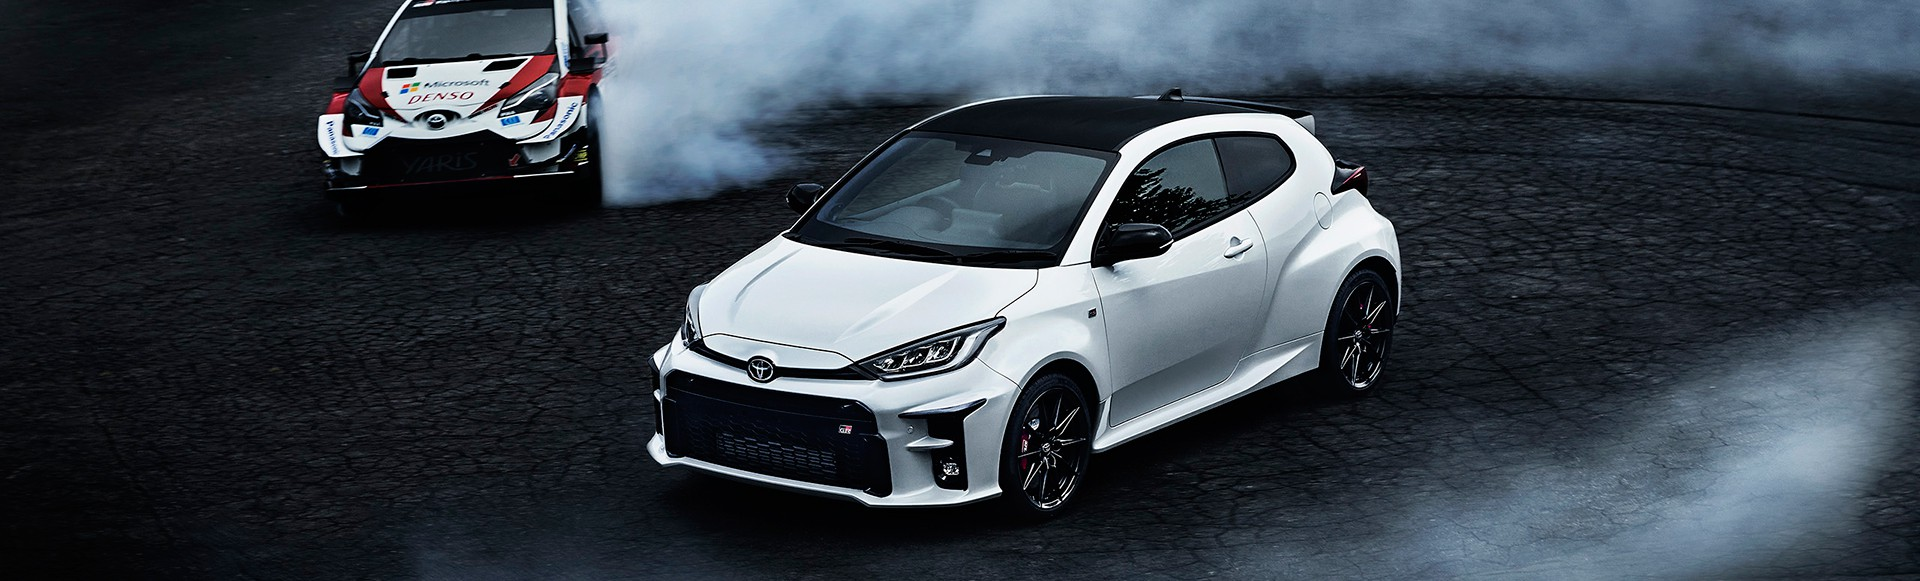 Toyota Celebrates Launch of New GR Yaris in Japan with Virtual Event